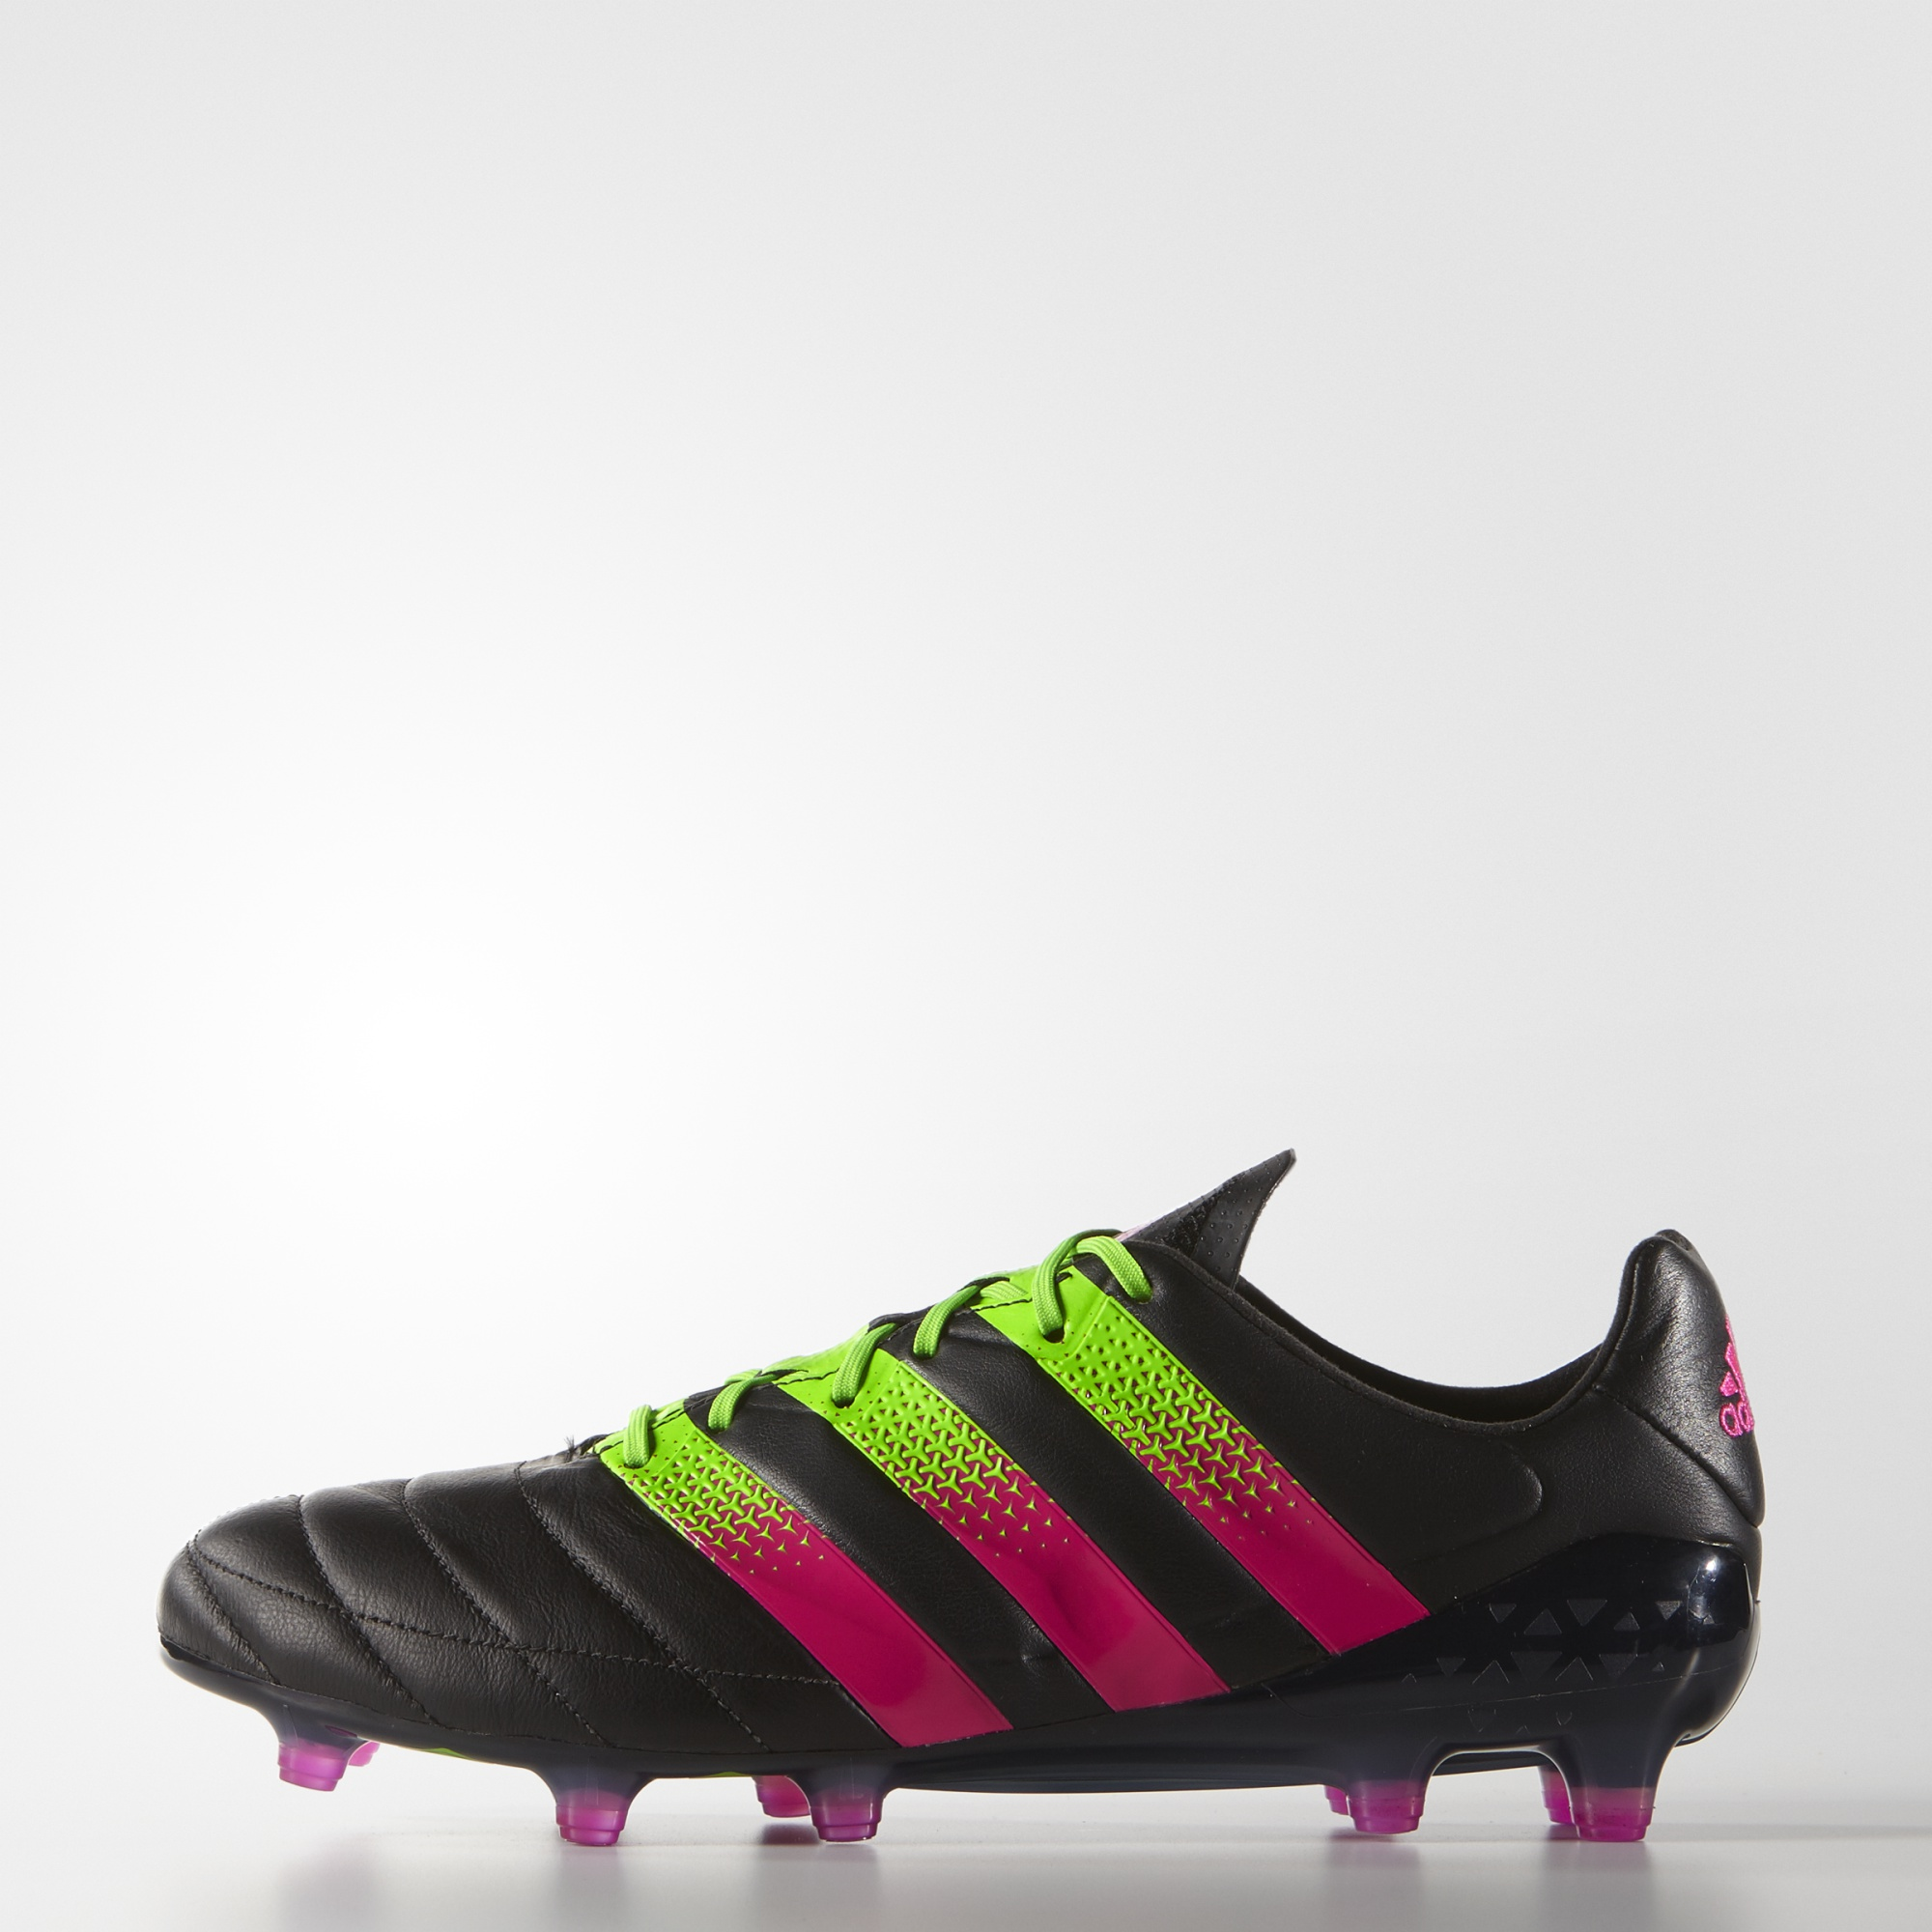 check out 117b4 f24b5 adidas Ace 16.1 FG/AG Leather - Black